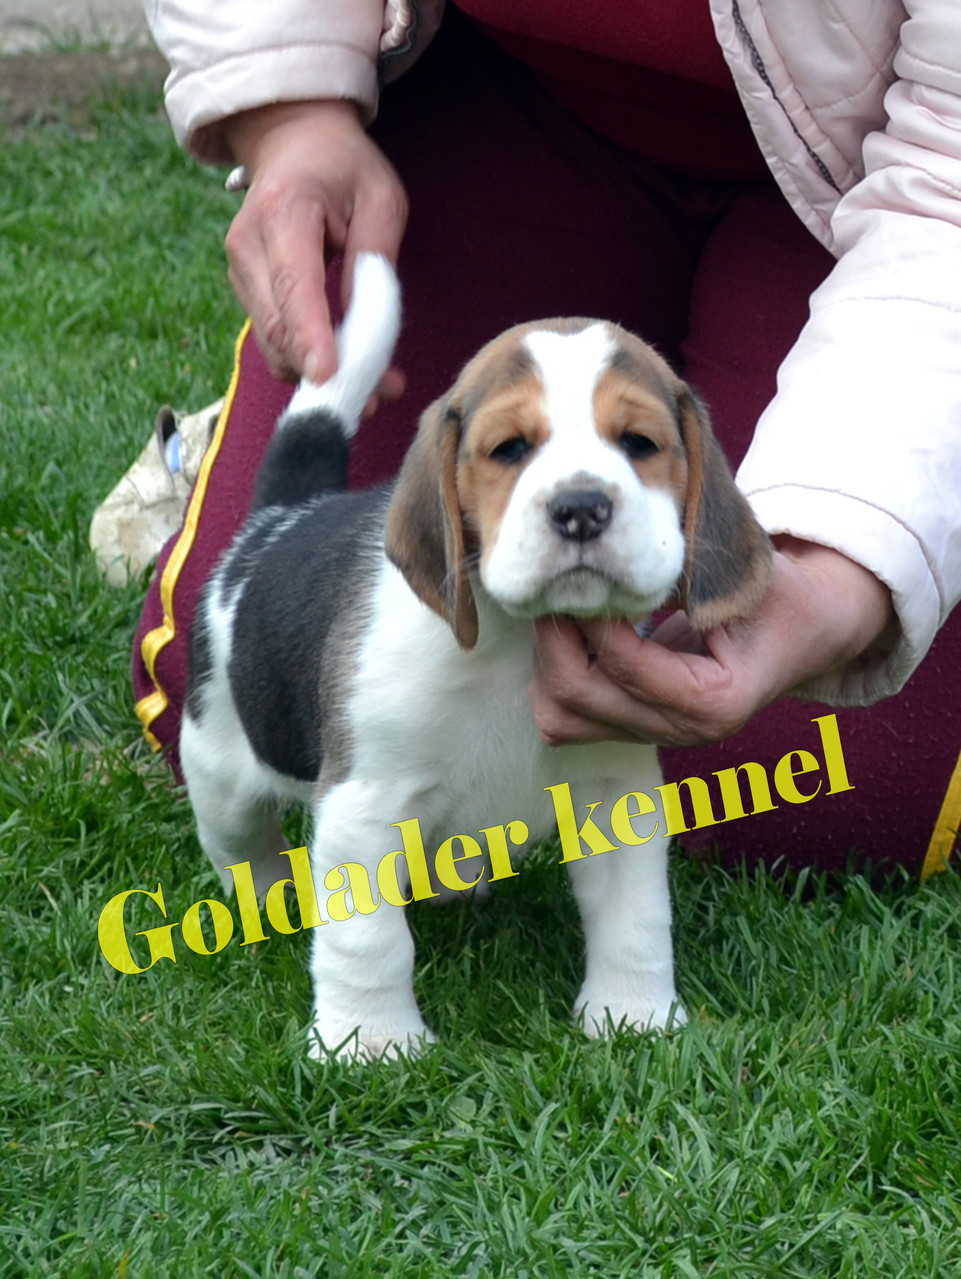 Goldader Vortex Del Mar, 38 days old